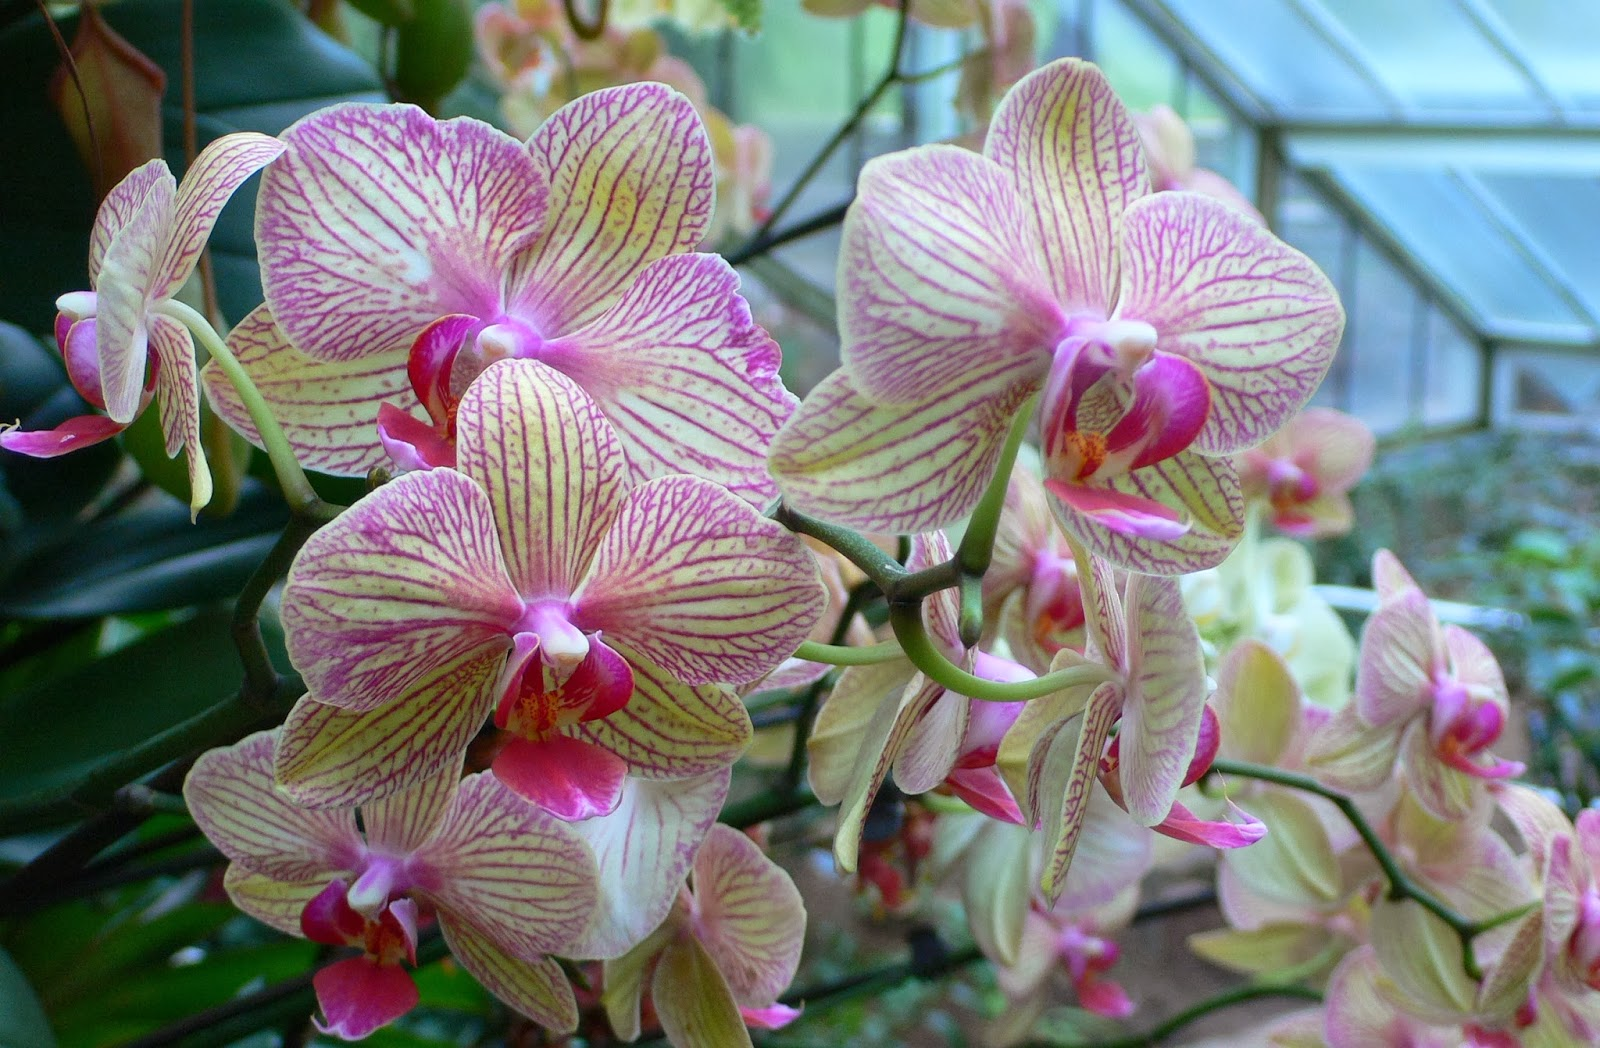 Blok888 top 10 most beautiful flowers in the world 1 orchid festival princess of wales conservatory kew gardens by heather cowper izmirmasajfo